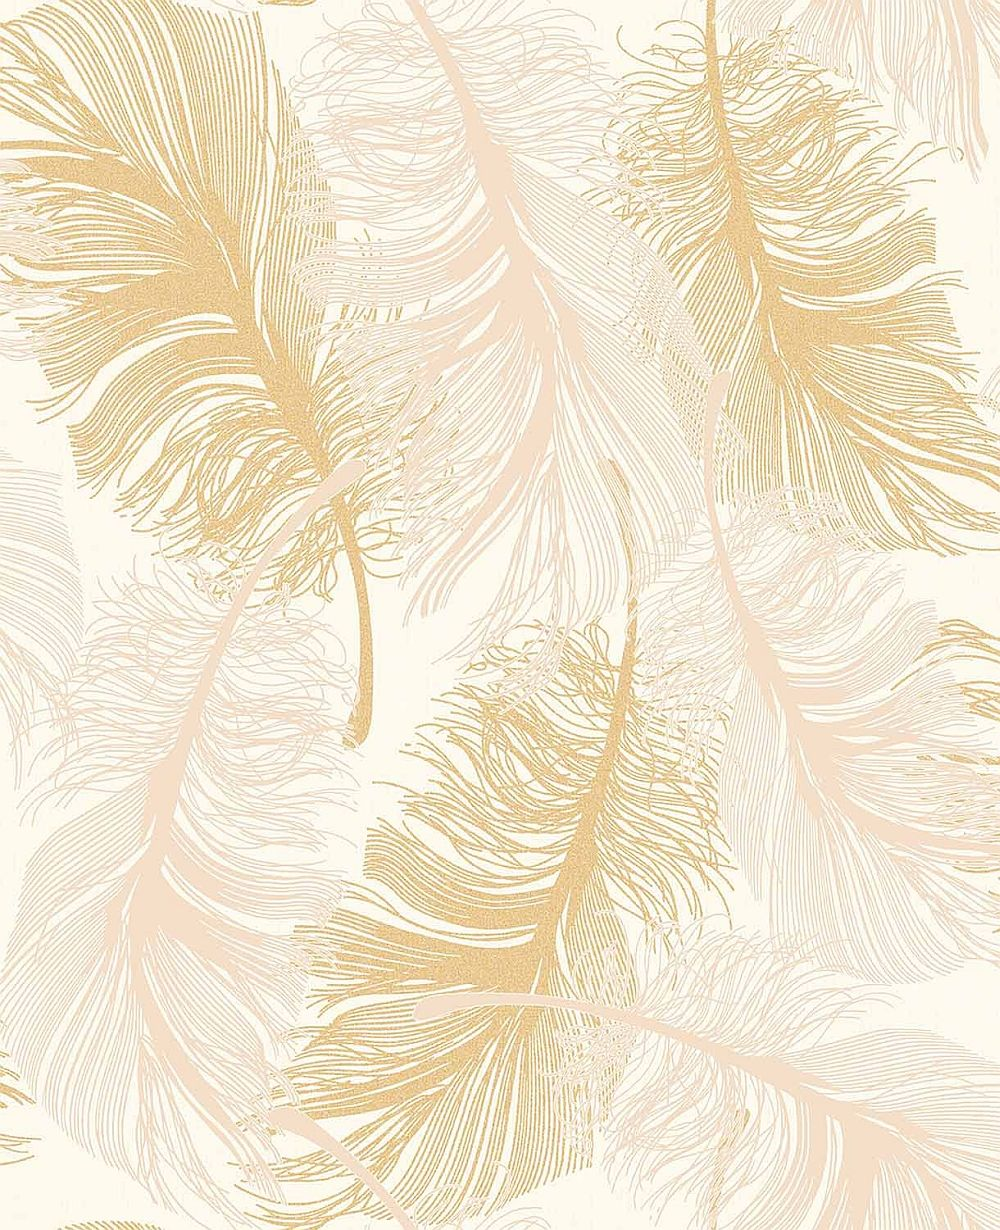 Pink Feathers Falling Wallpaper Feather Gold Coloroll Glitter Effect Code M0926 163 11